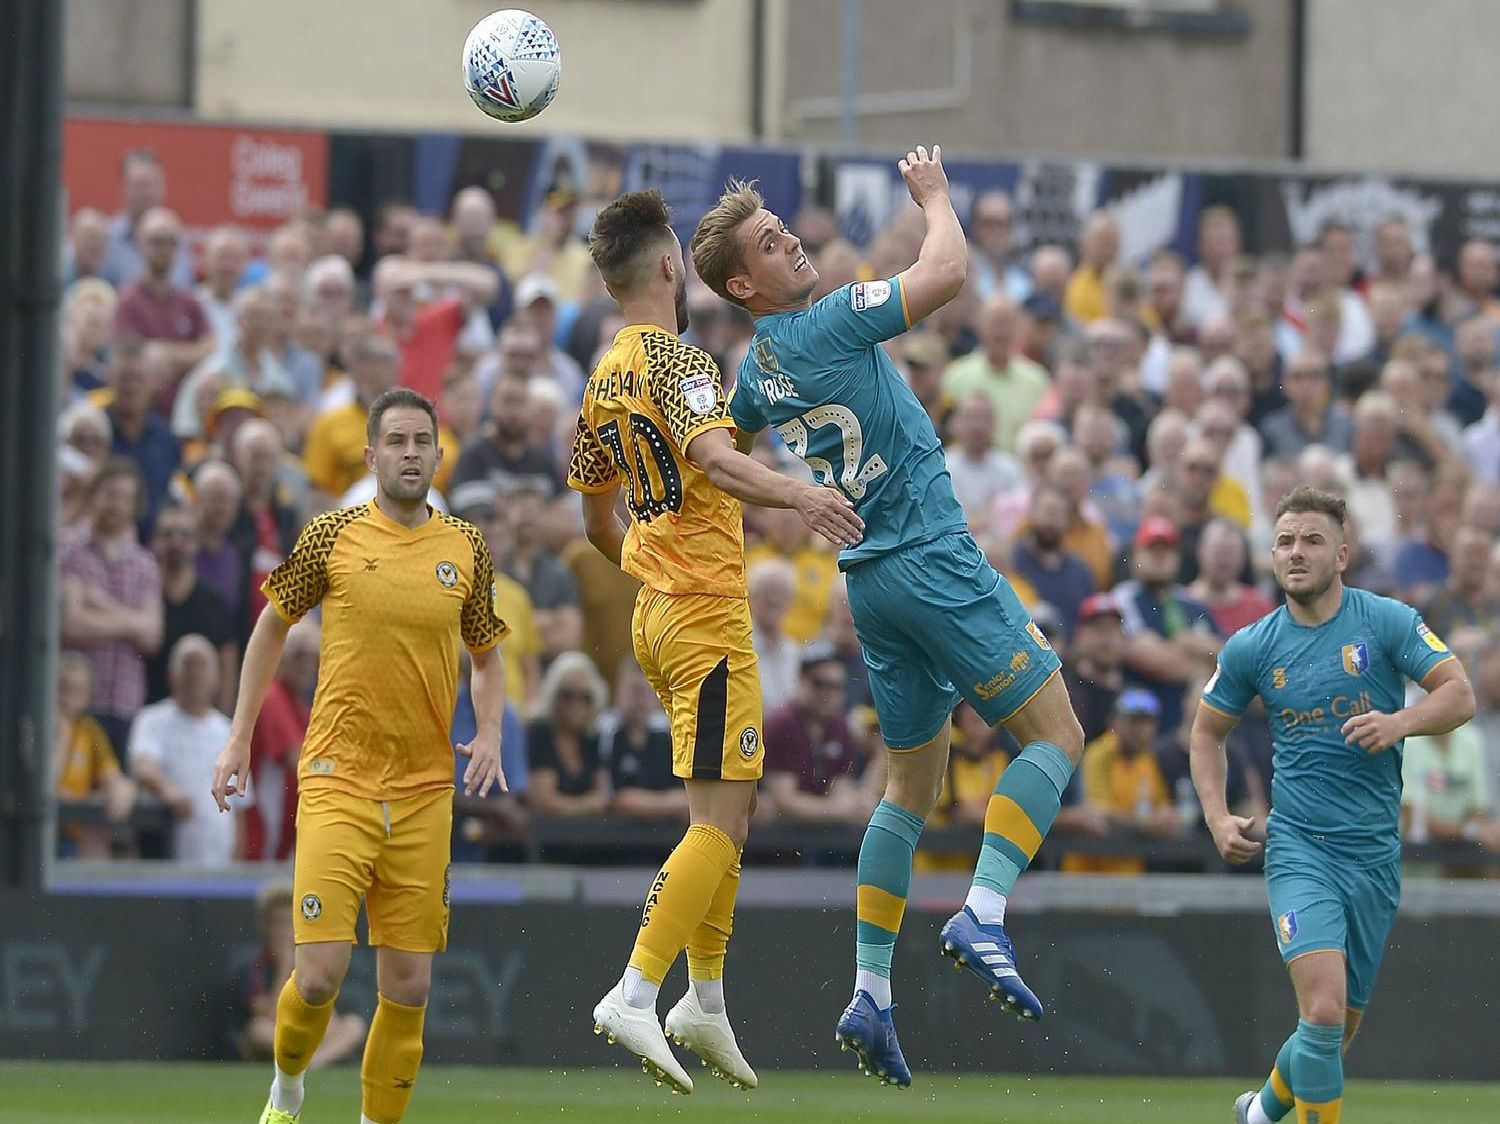 Match action from Mansfield's battling 2-2 draw at Newport County.